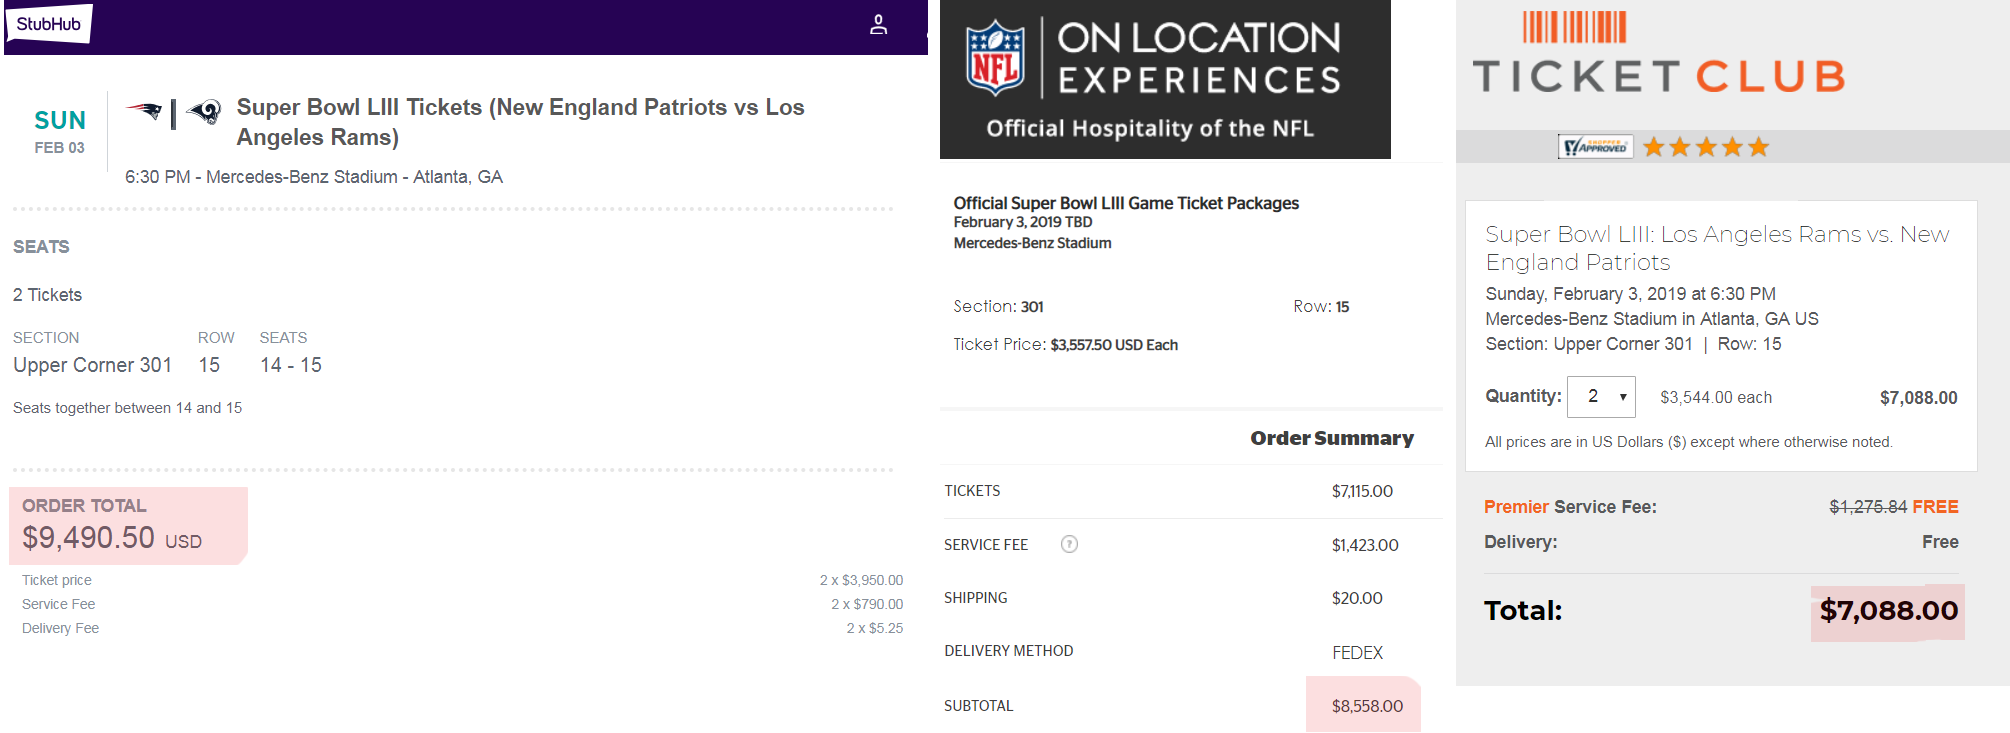 comparing super bowl ticket prices ticket club